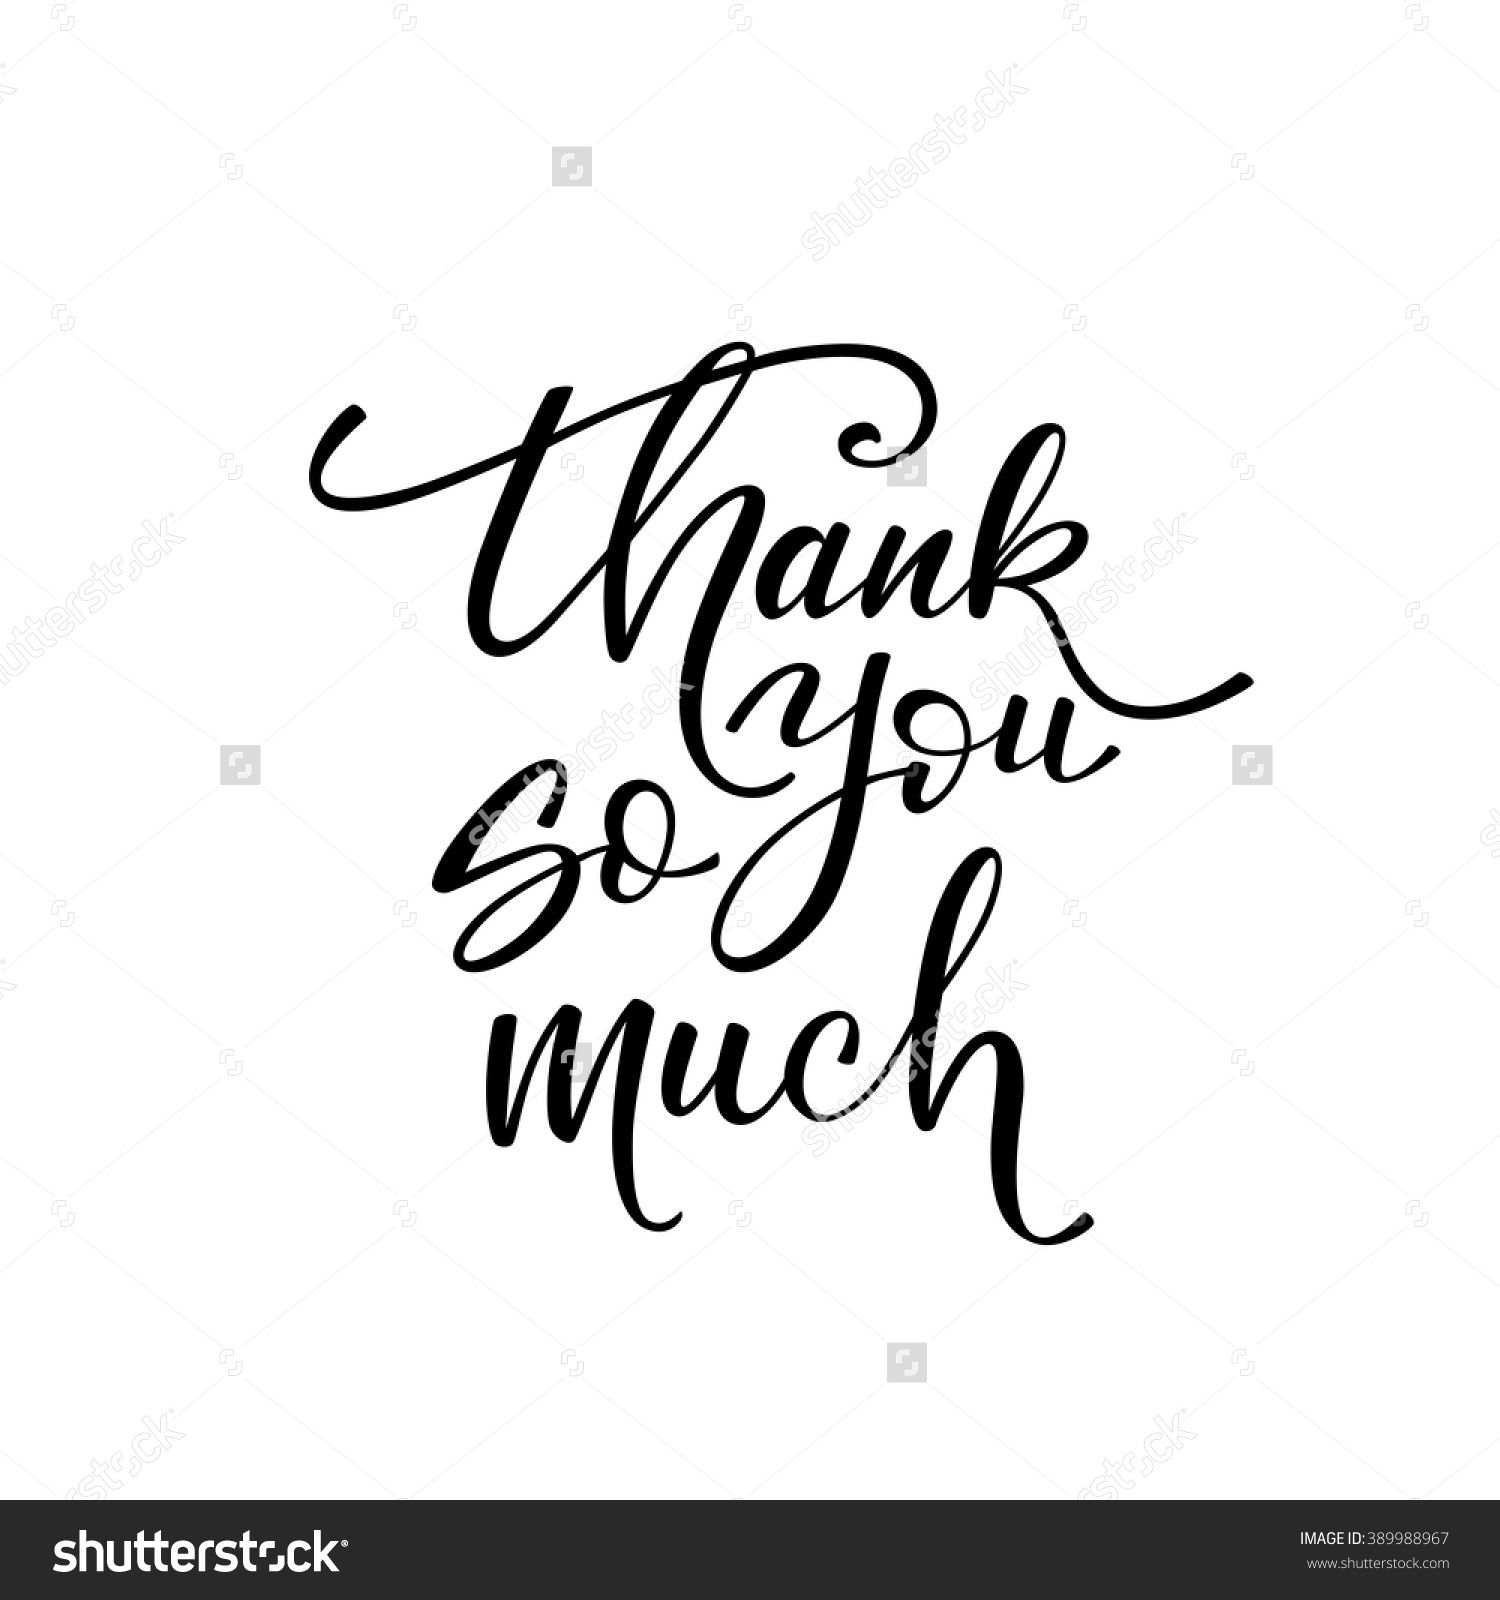 Thank you so much card hand drawn greetings lettering